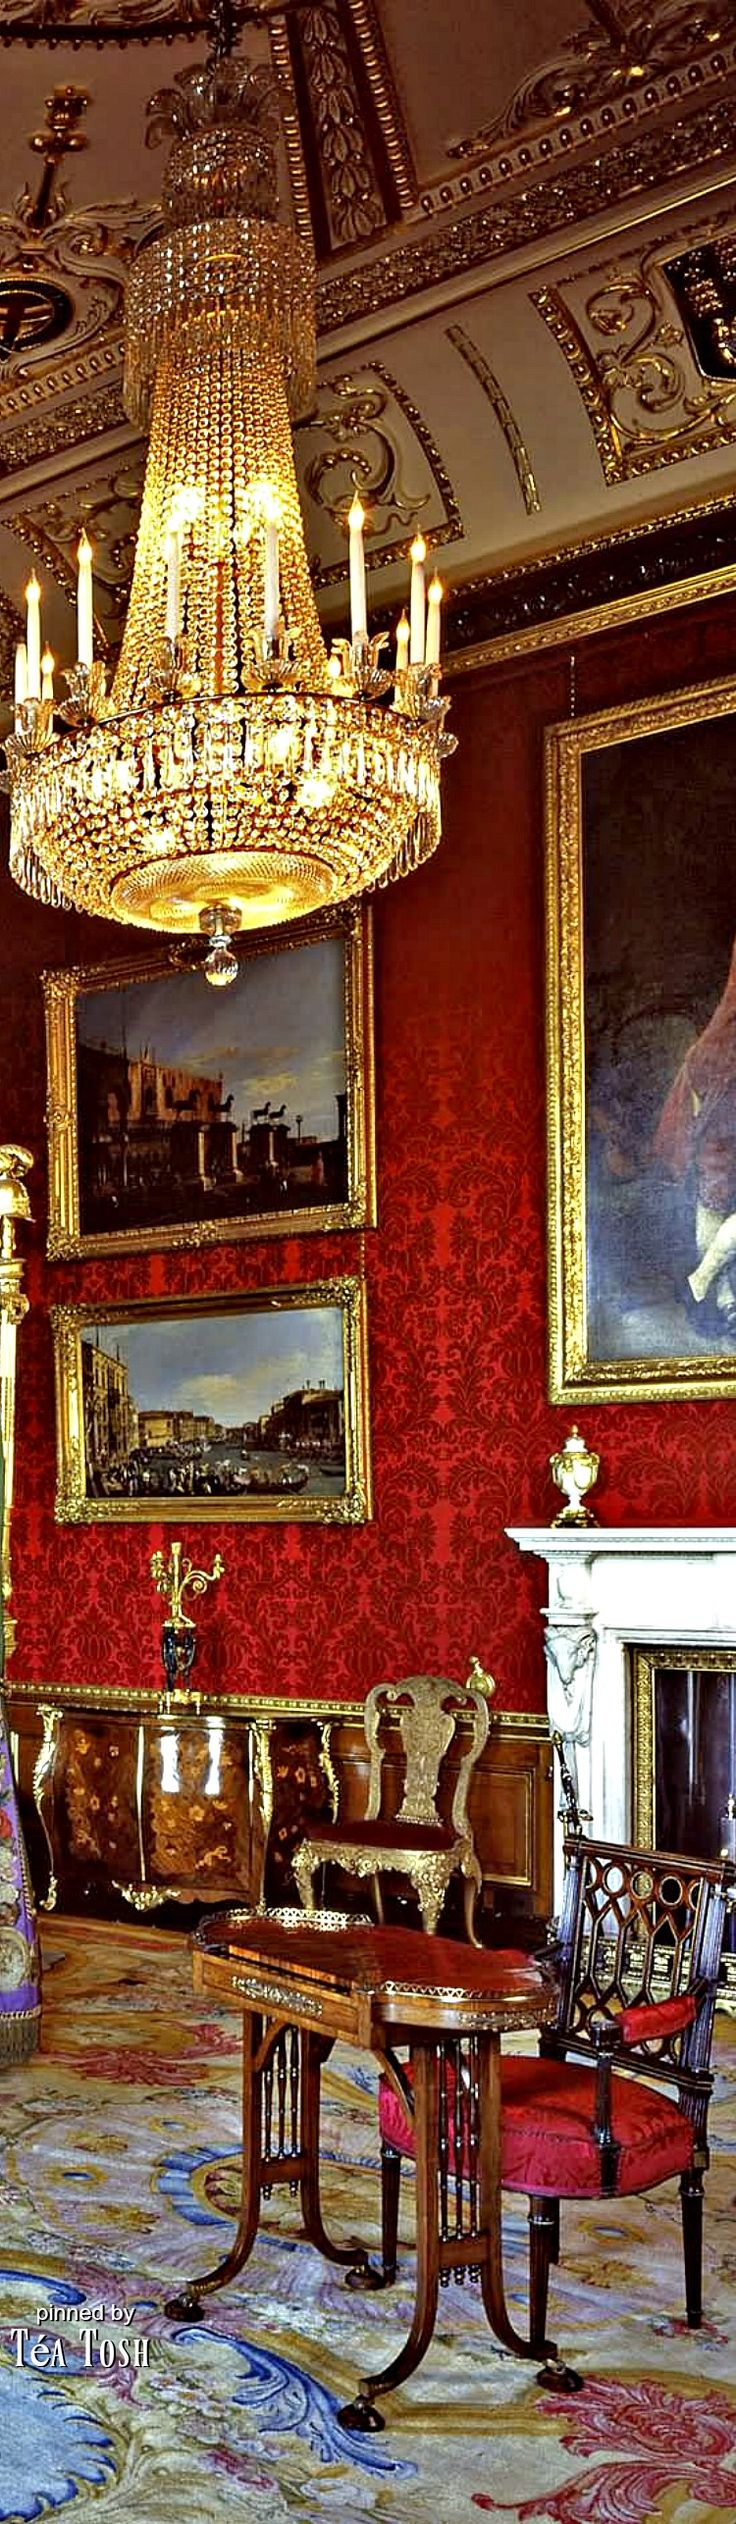 ❇Téa Tosh❇ Buckingham-Palace-Blue-Drawing-Room                                                                                                                                                                                 More